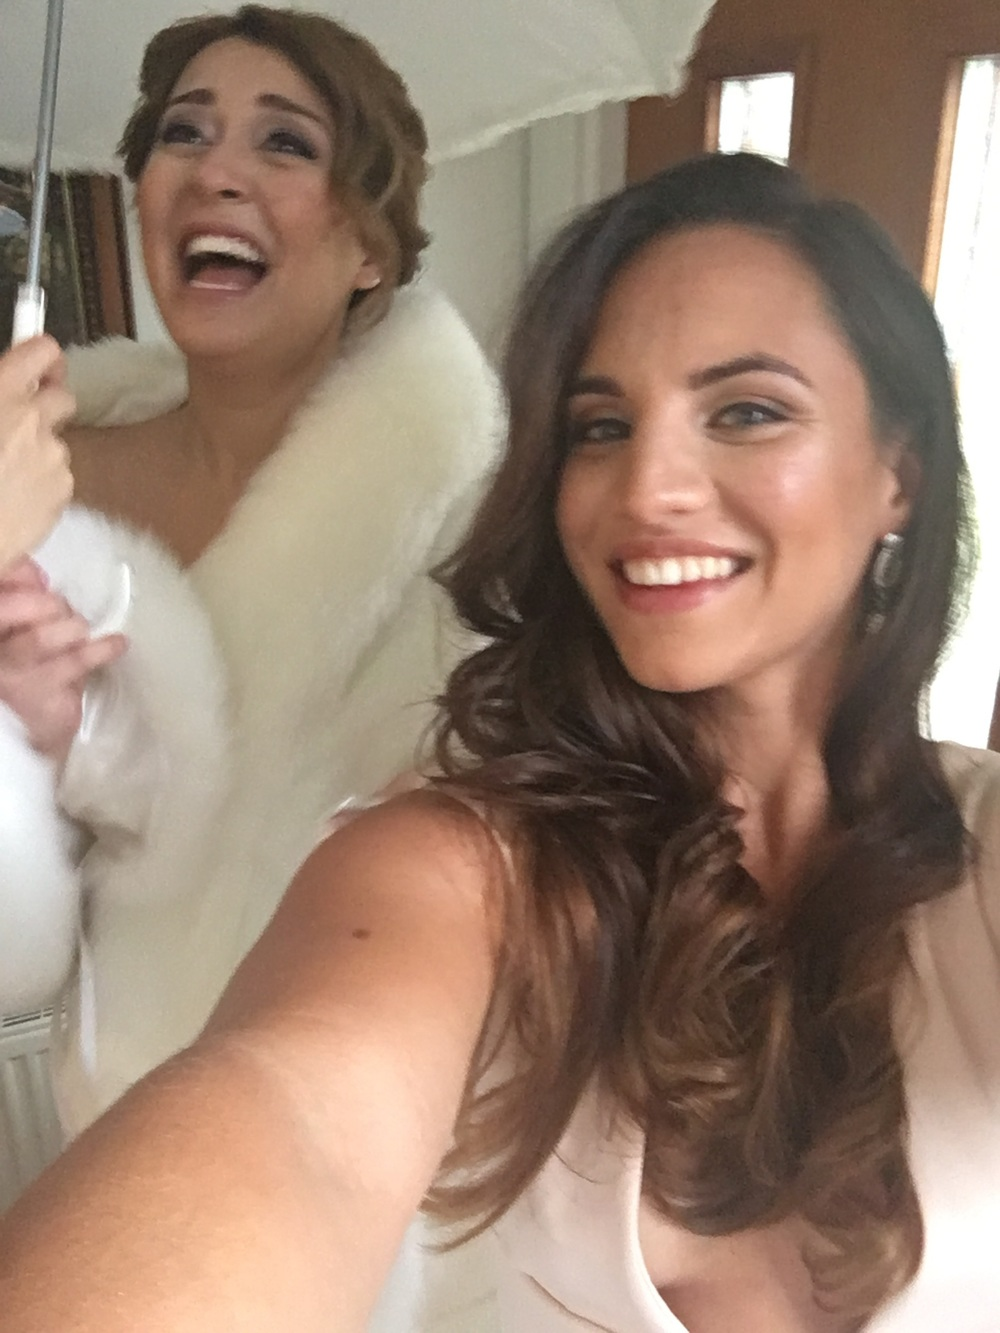 This is us at her wedding, i was bridesmading the shit of it of course